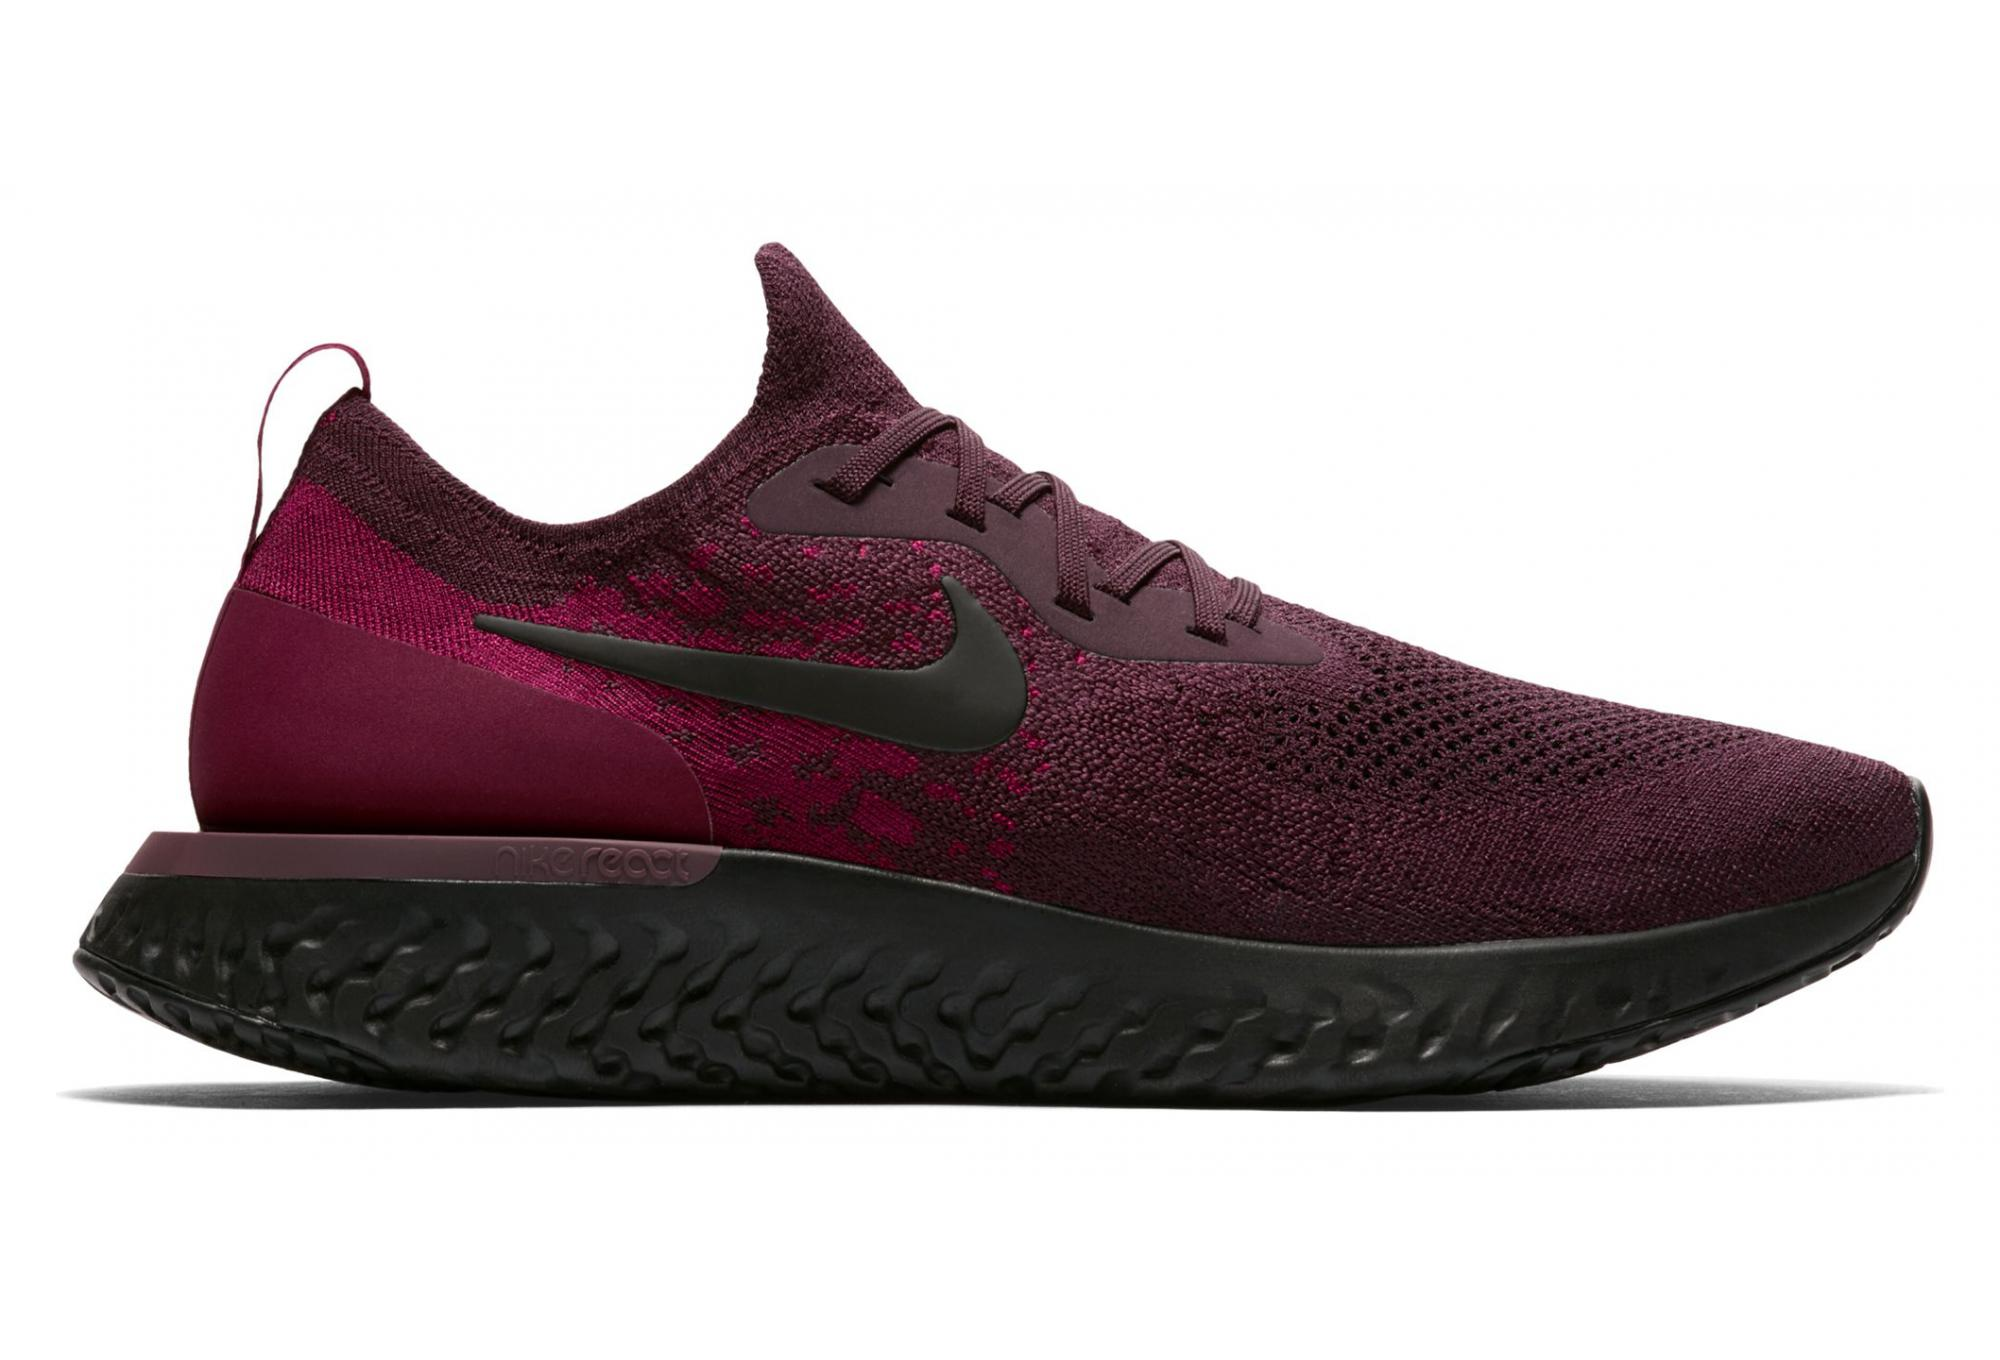 6730a9f58b0a1 ... spain nike epic react flyknit red wine men 27847 441eb ...